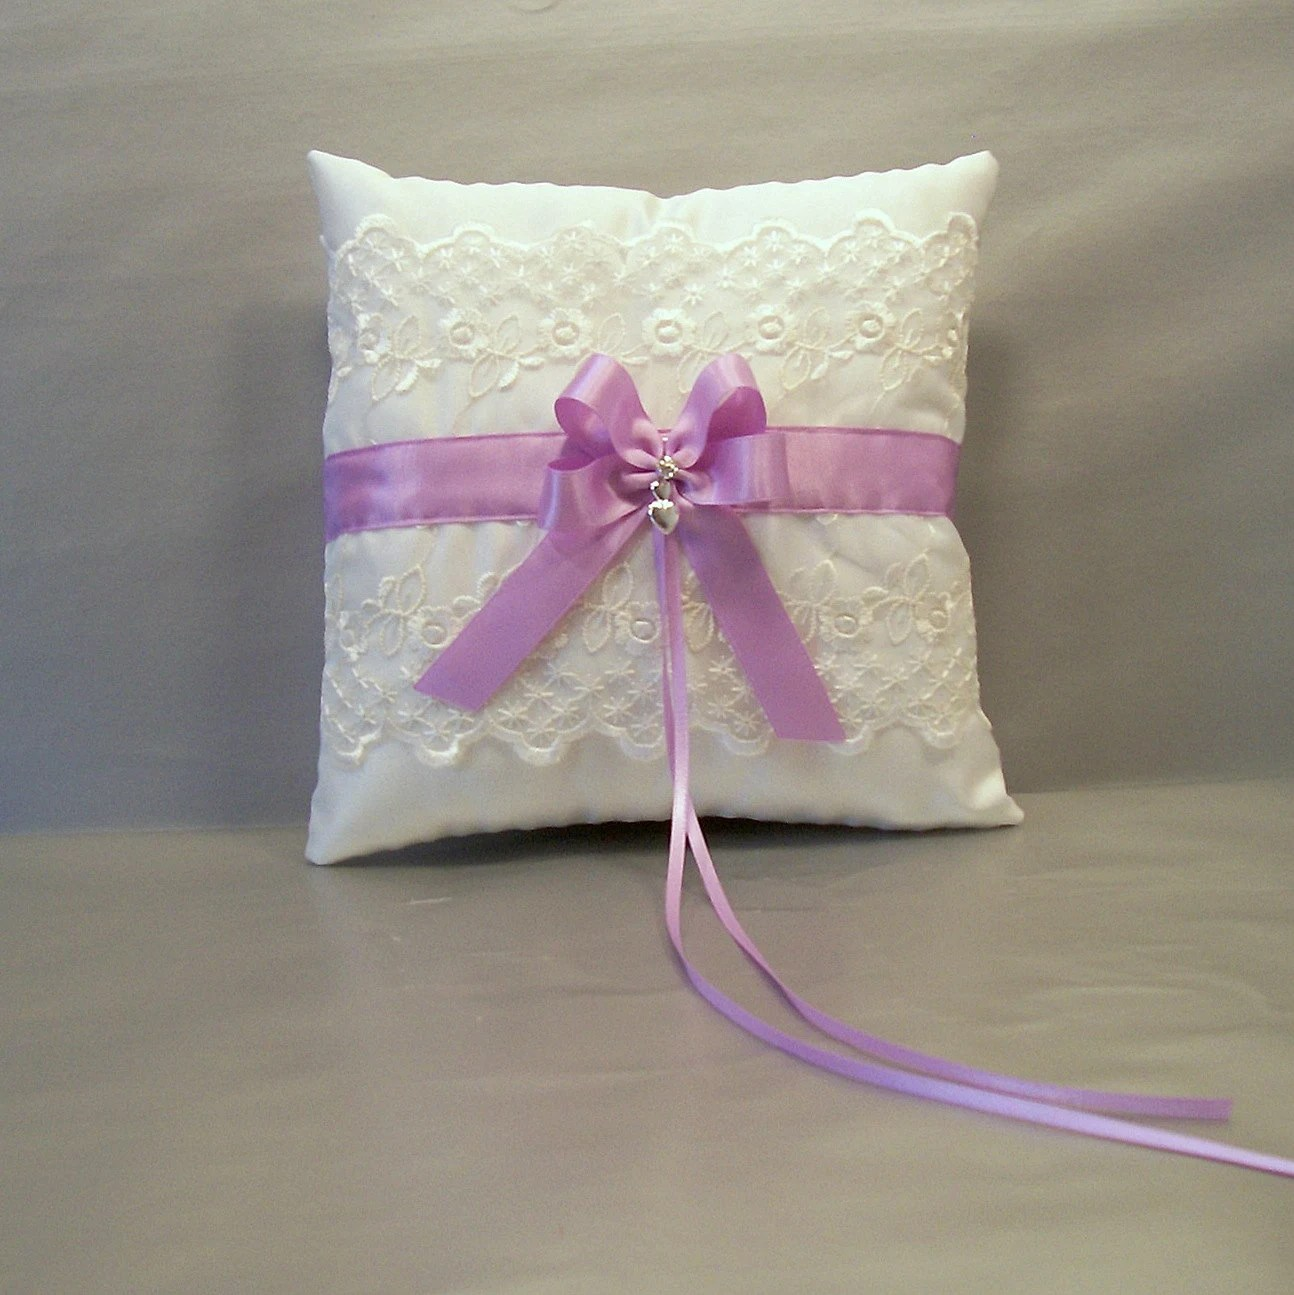 Orchid Purple Wedding Bridal Ring Bearer Pillow on Ivory or White Satin and Lace w/ Double Loop Bow & Rhinestone Bead - evertonbridal